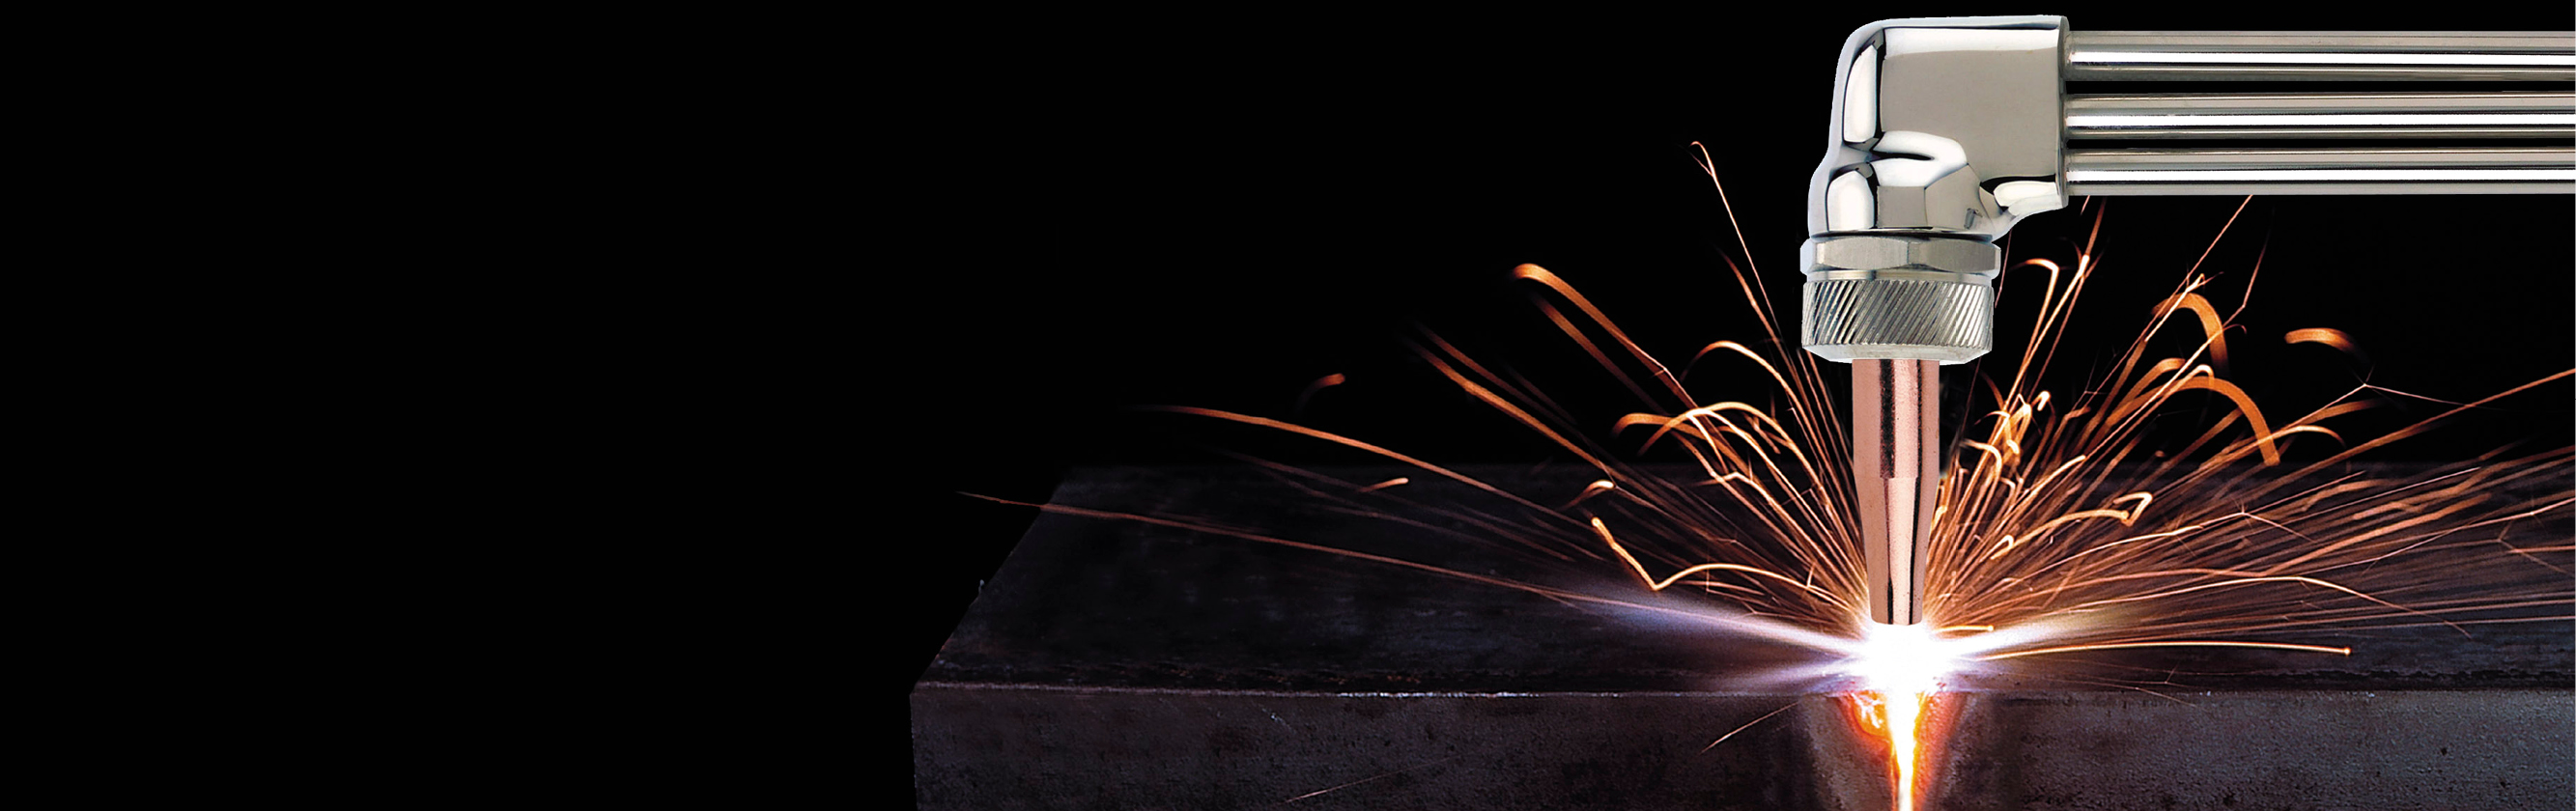 JWS Welding and Industrial Supplies banner image showing a spot welder in action